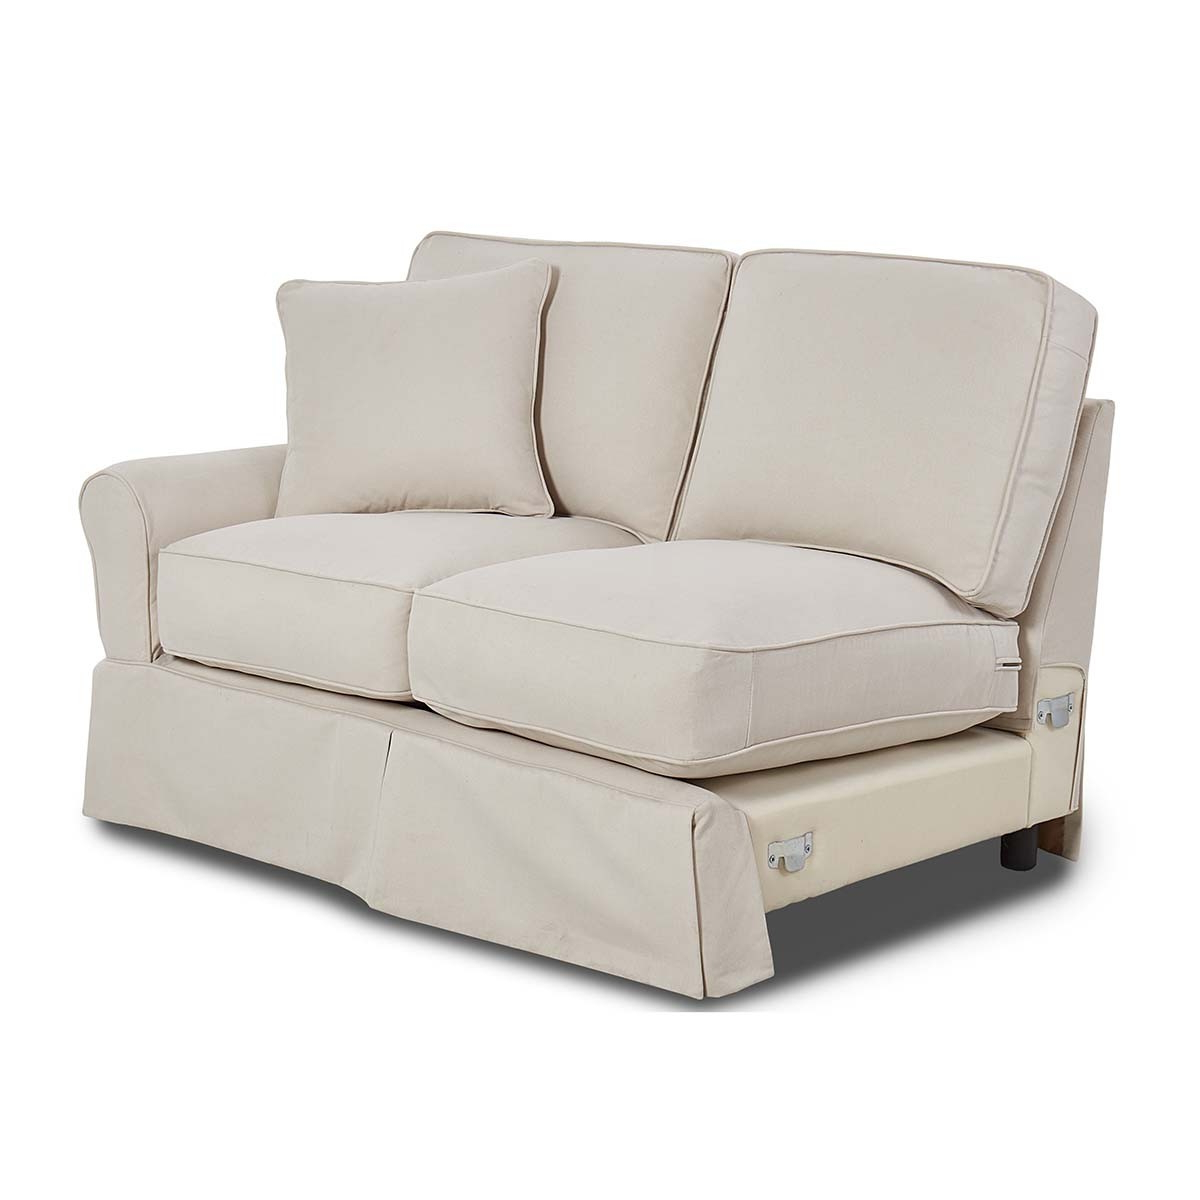 Most Recent Turdur 2 Piece Sectionals With Raf Loveseat Regarding Knightsbridge Sectional (View 9 of 20)